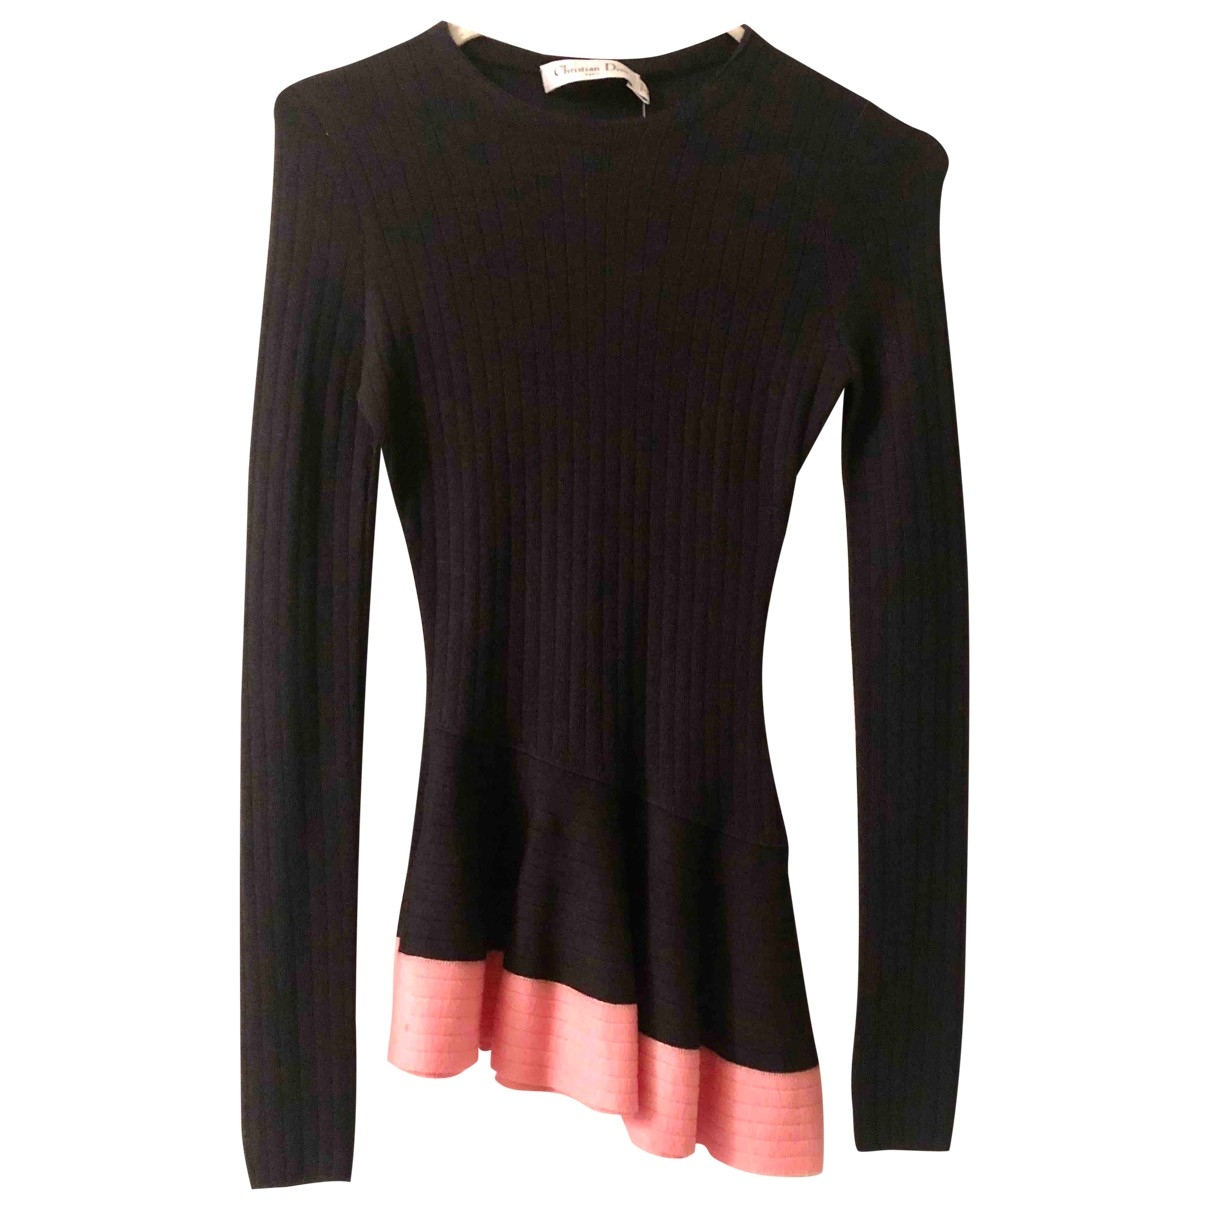 Dior \N Navy Cashmere  top for Women 40 IT